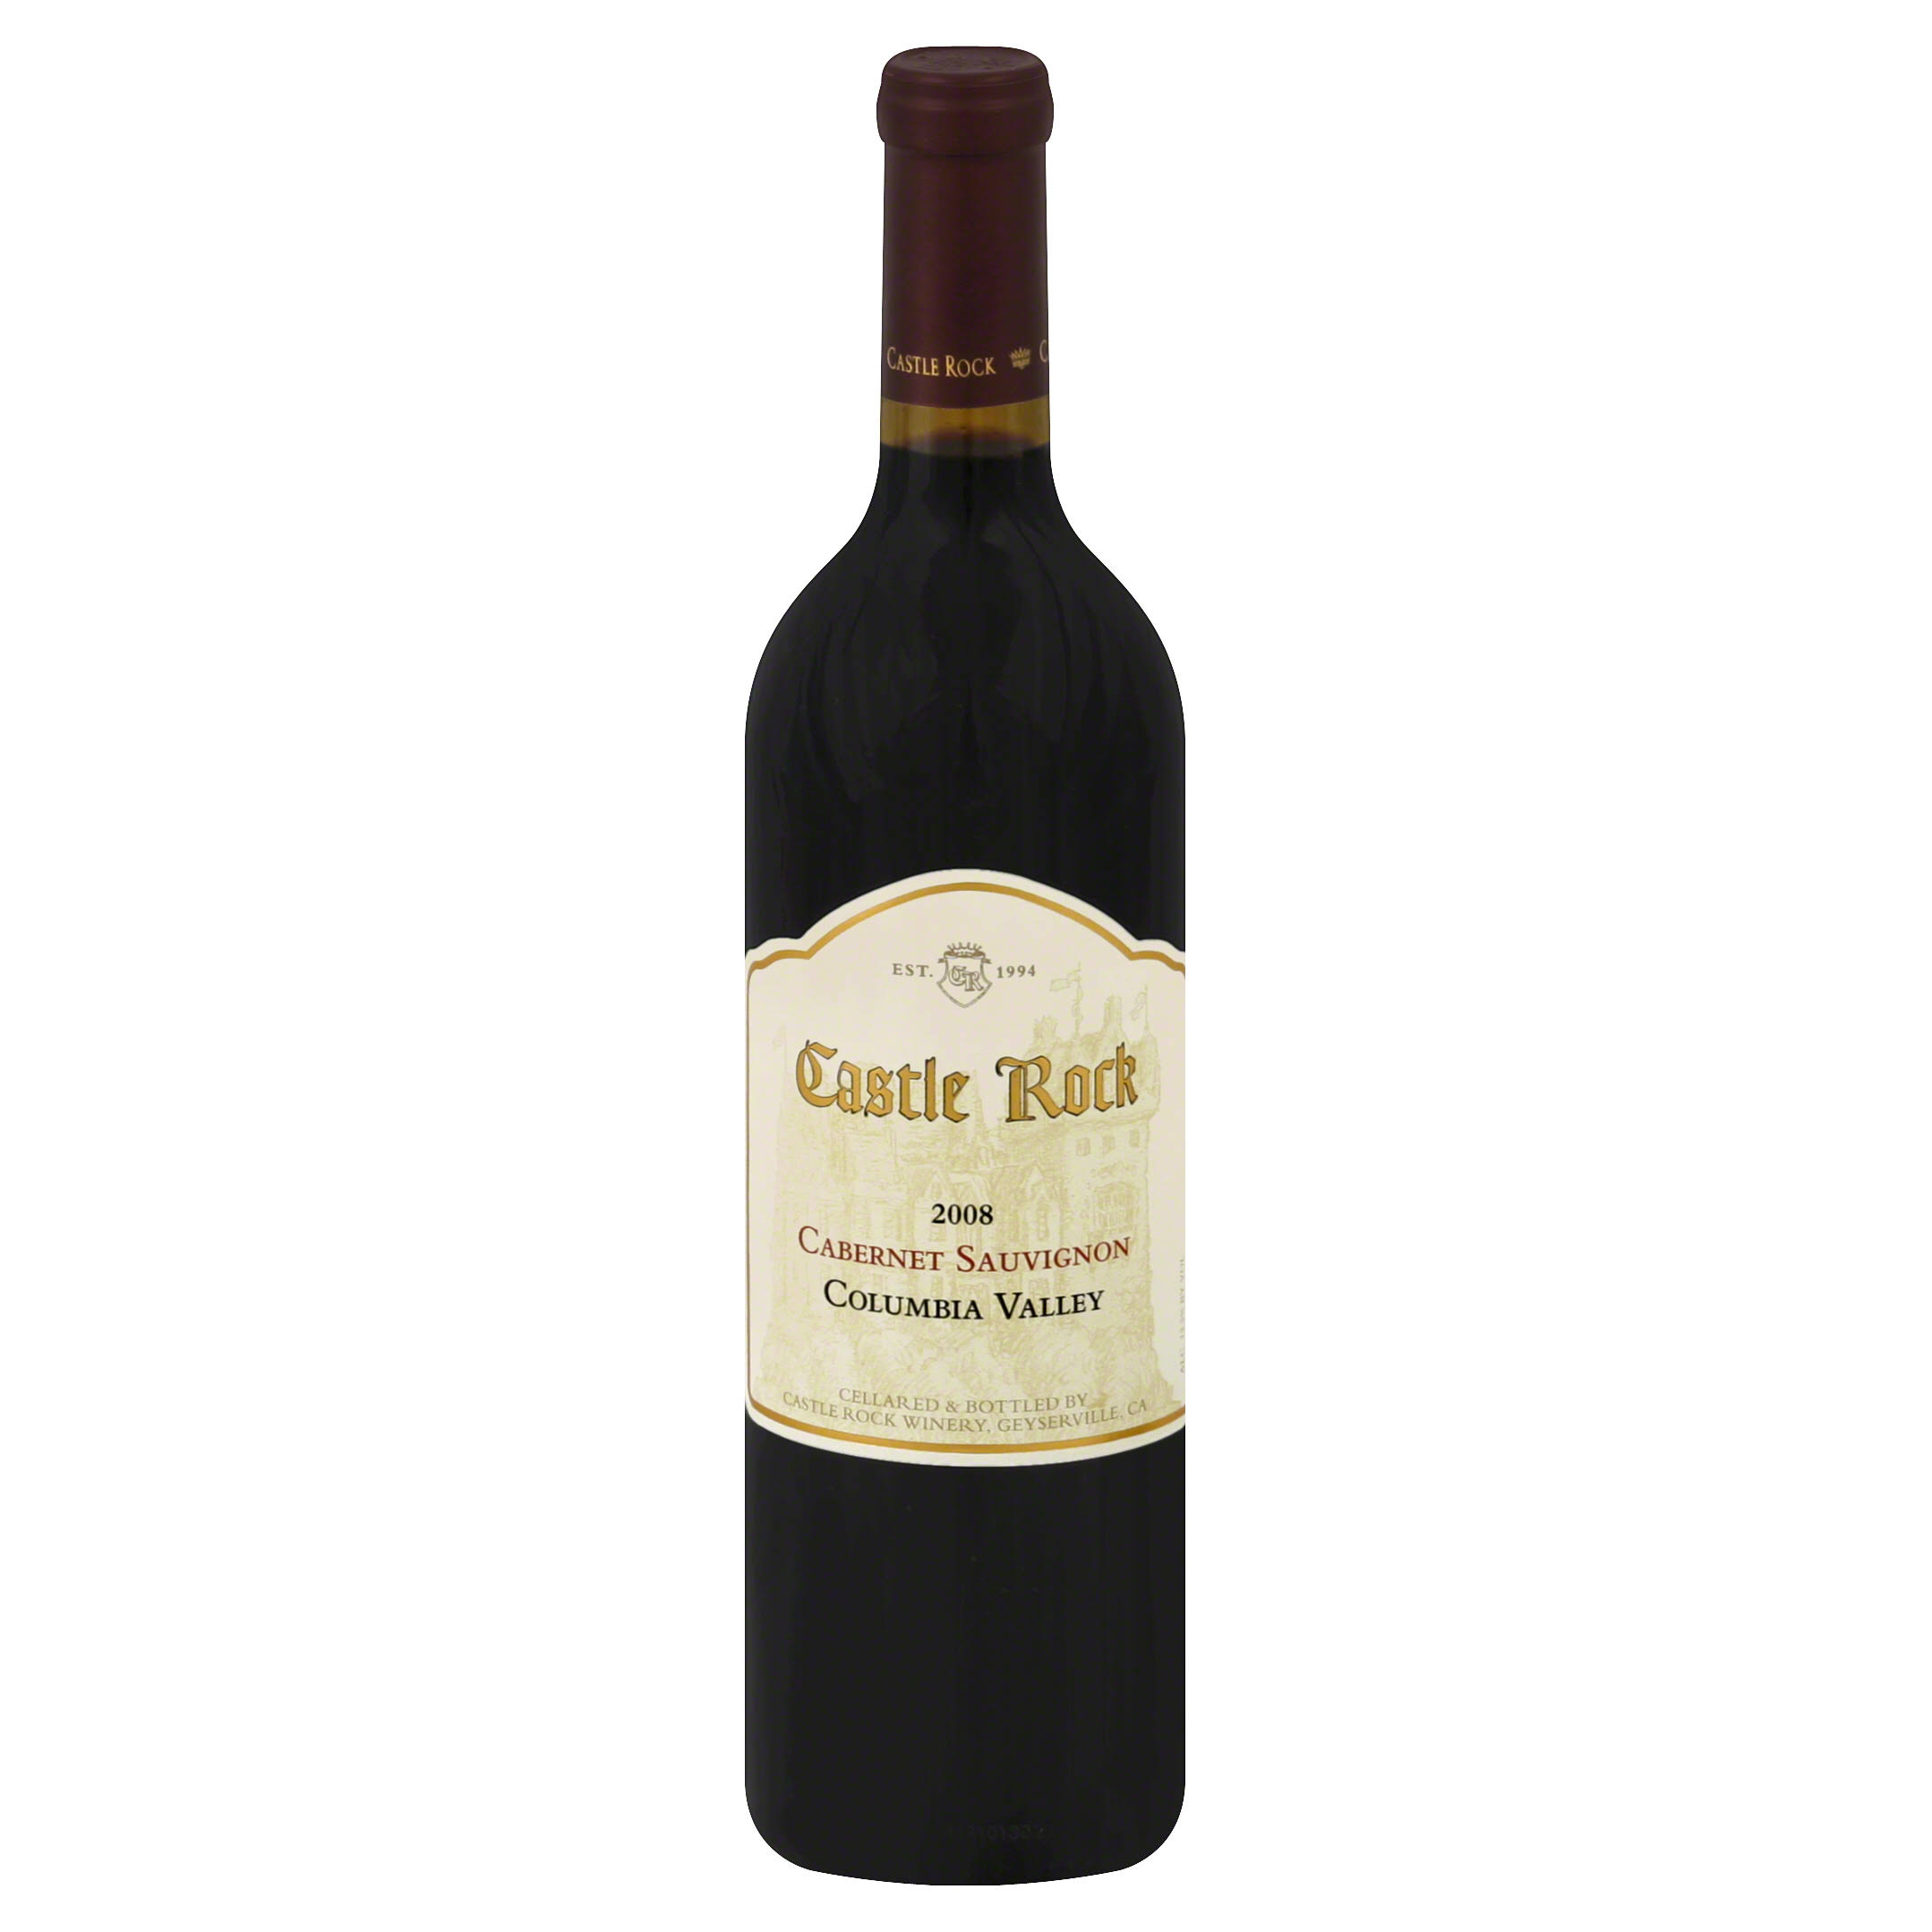 Castle Rock Columbia Valley Cabernet Sauvignon